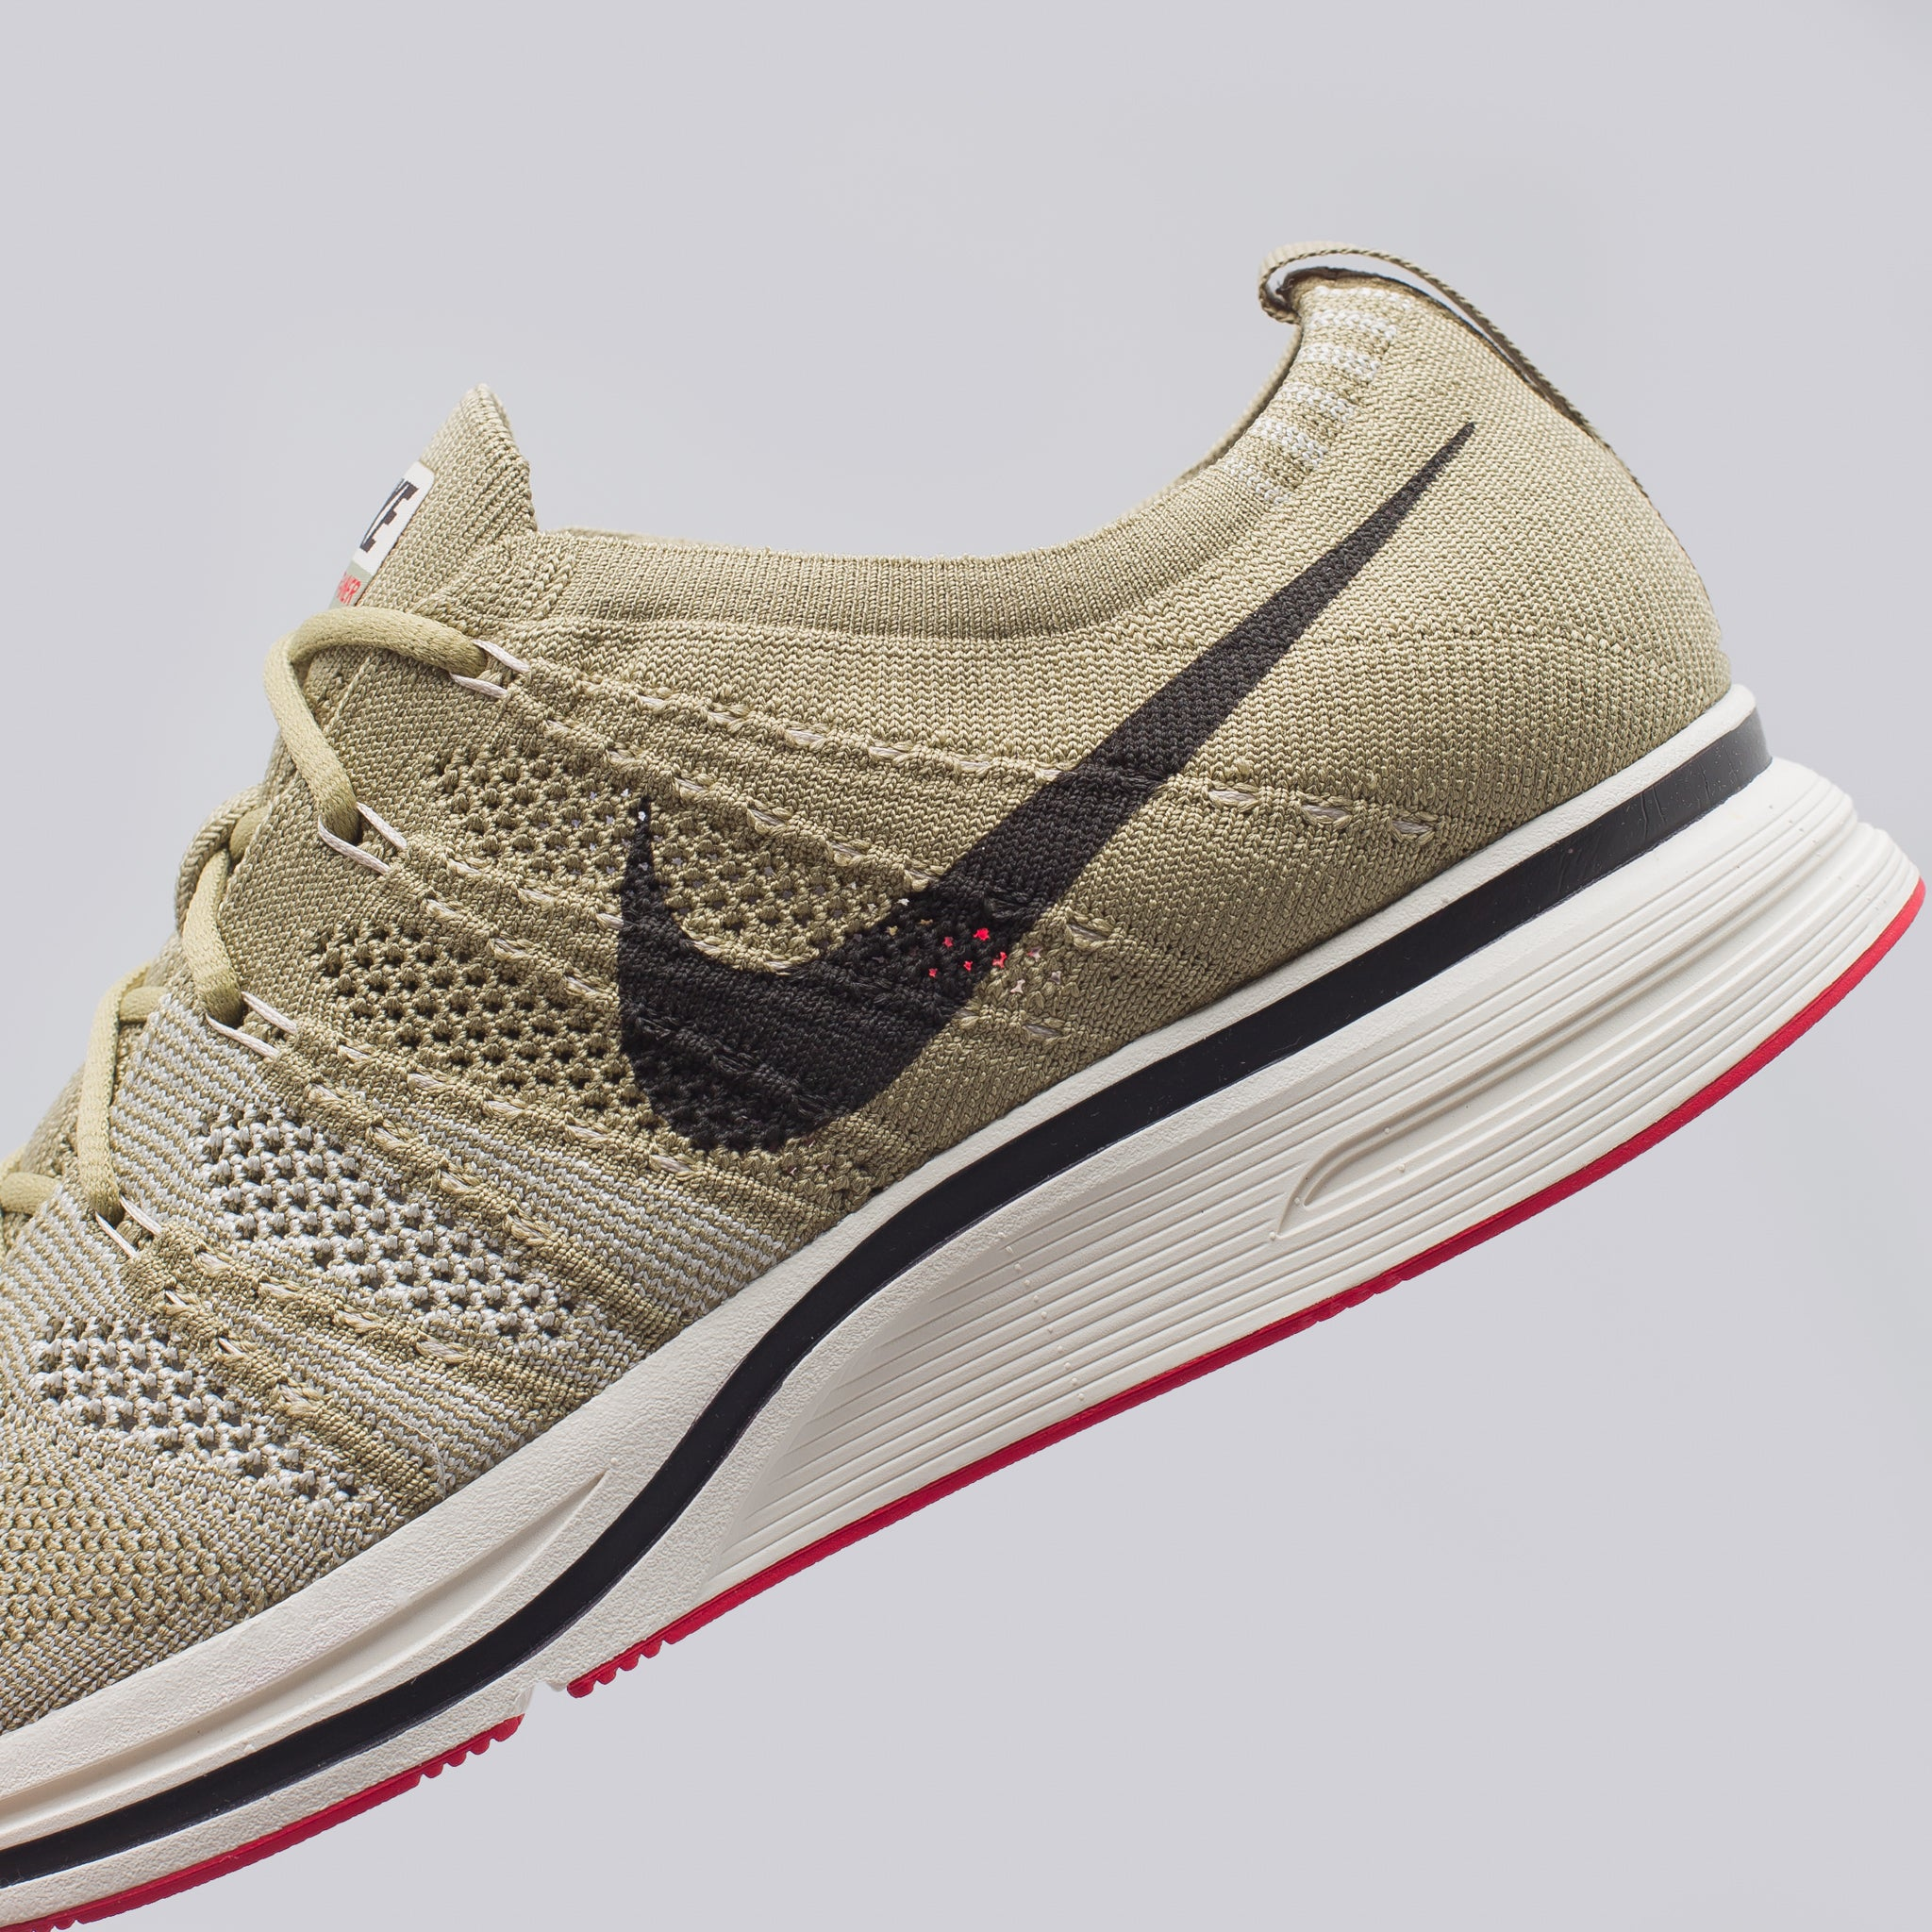 Flyknit Trainer in Olive/Brown